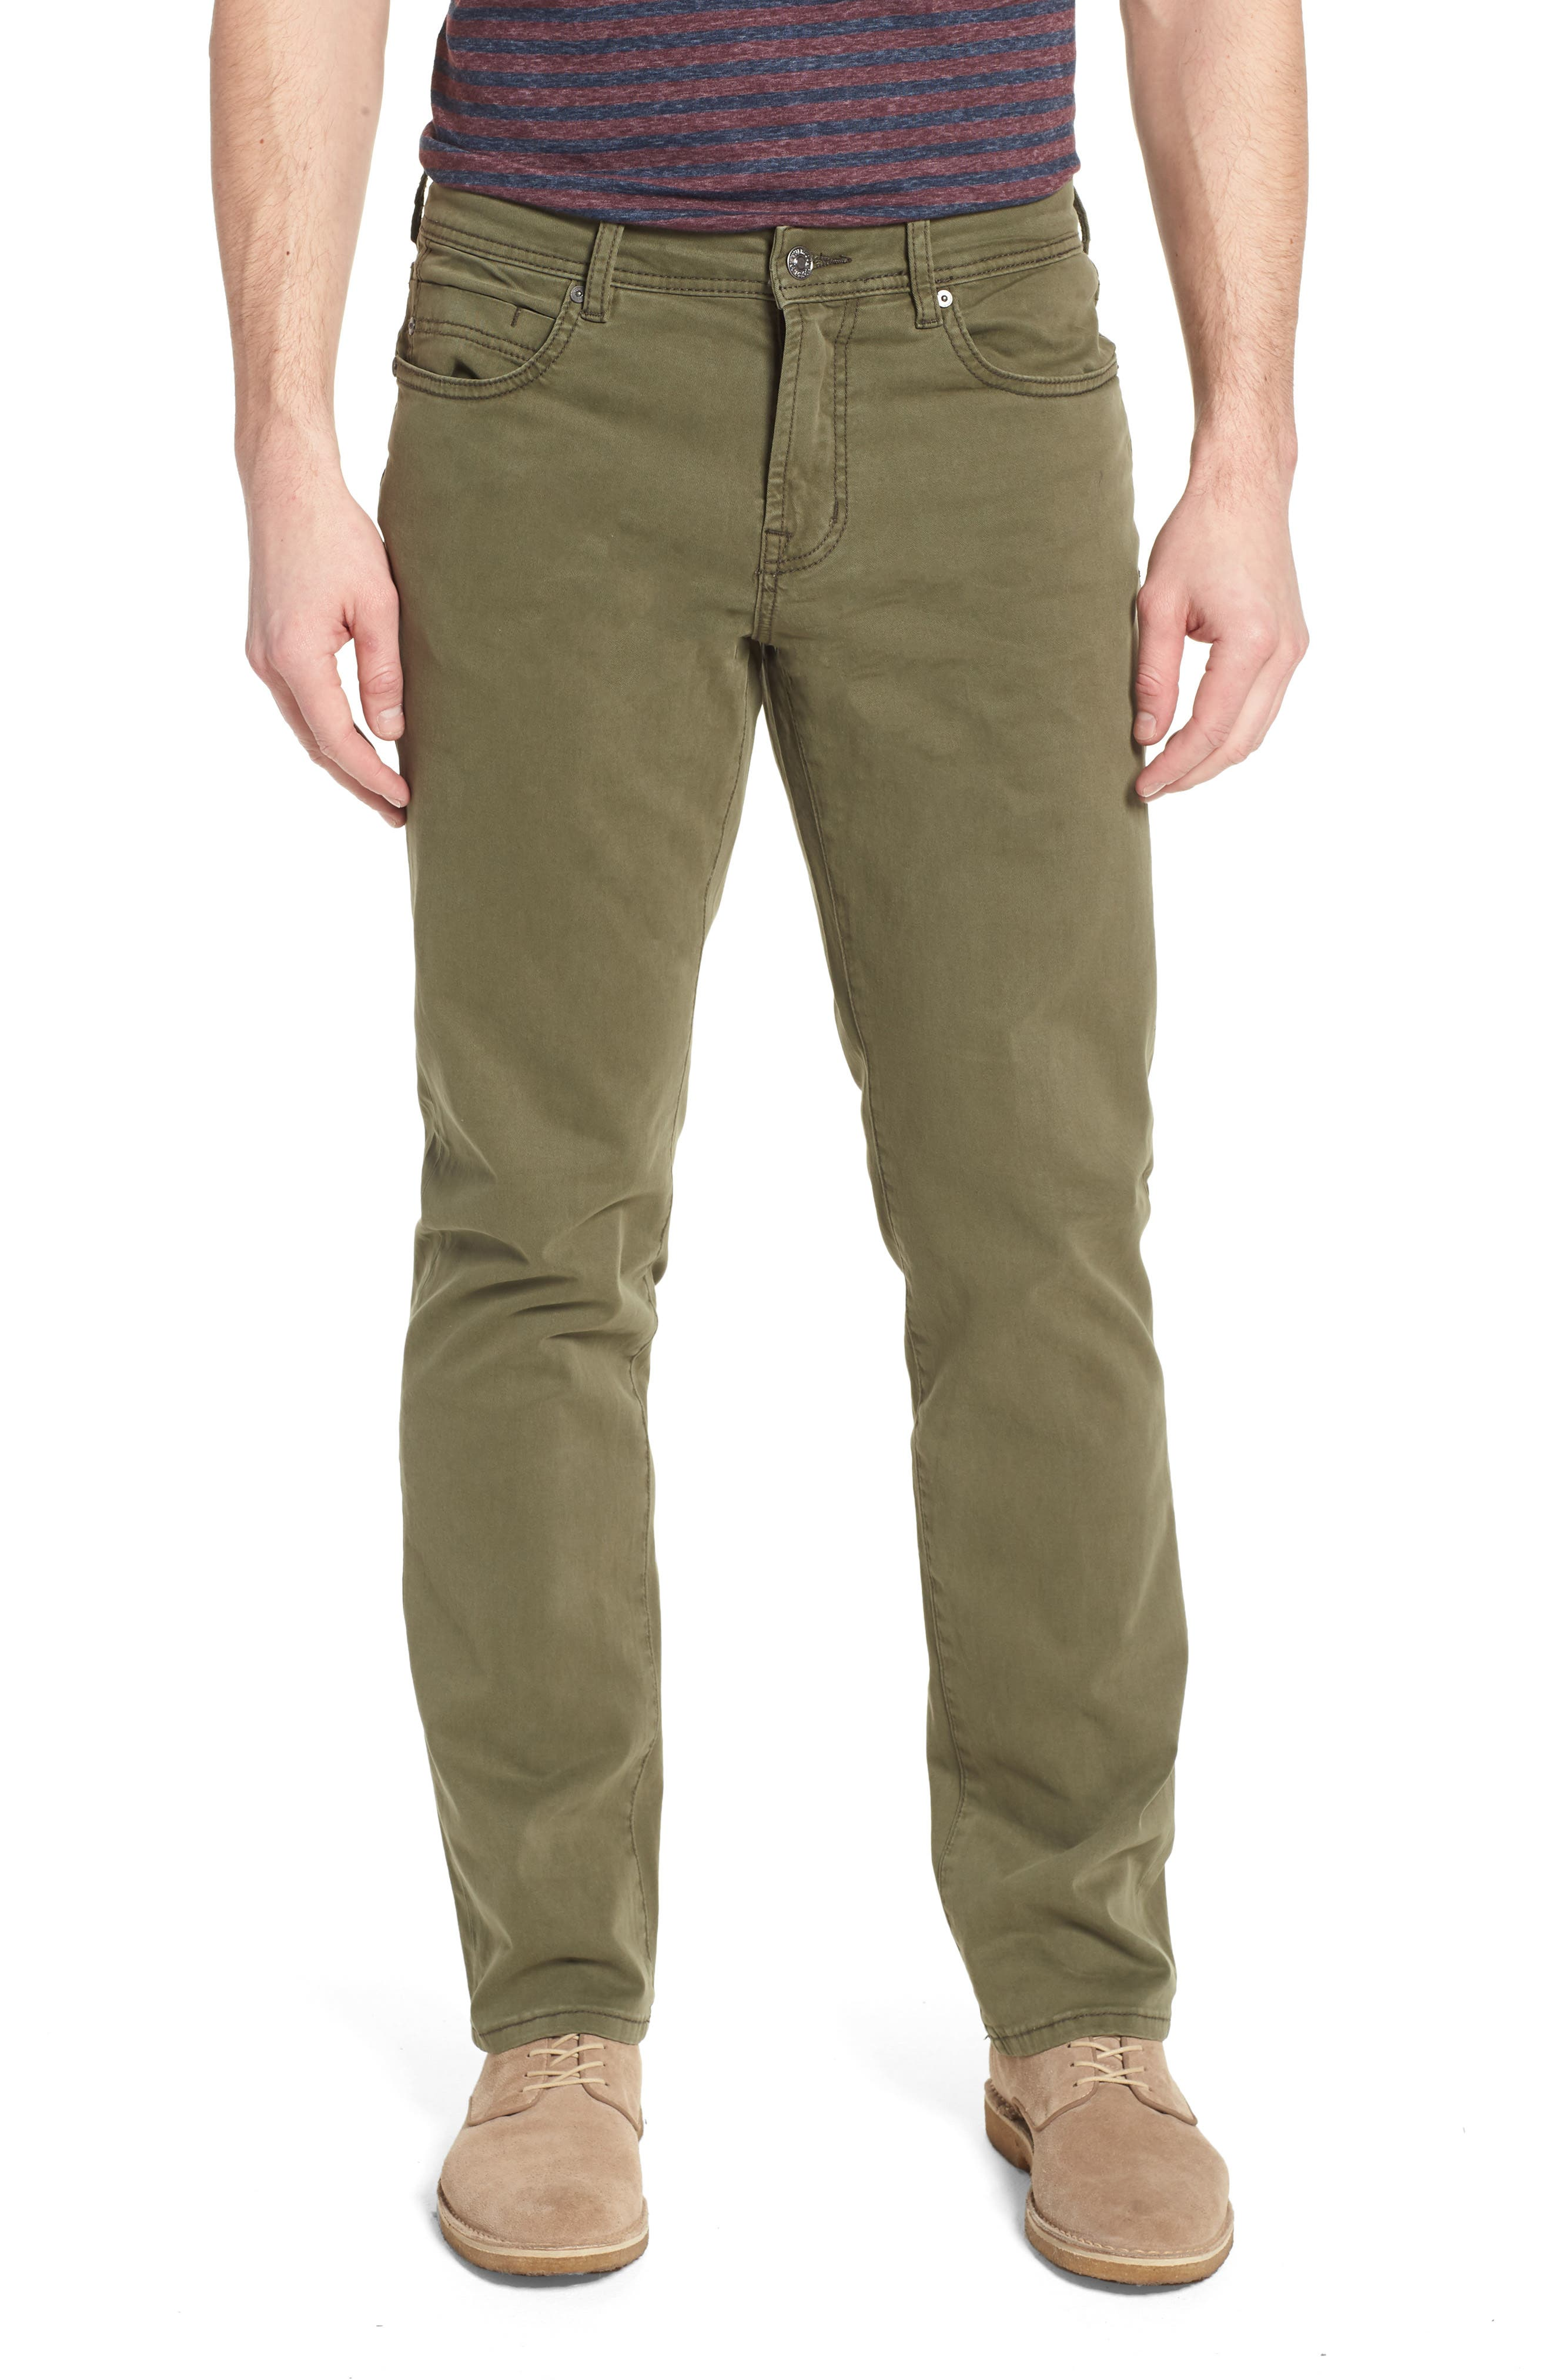 Jeans Co. Regent Relaxed Fit Jeans,                         Main,                         color, Olive Night